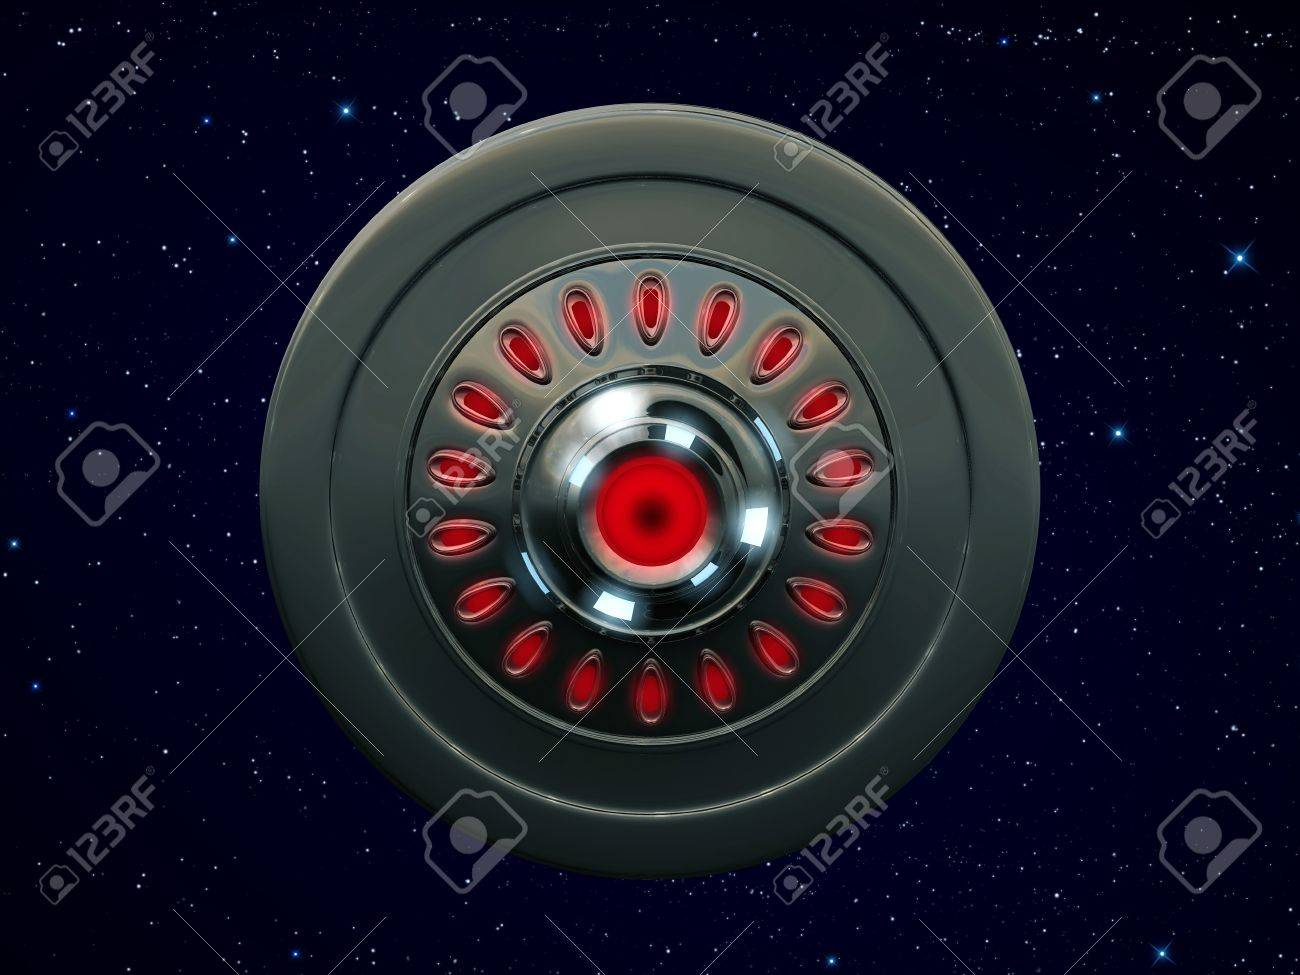 ufo bottom view flying in the sky Stock Photo - 13624679